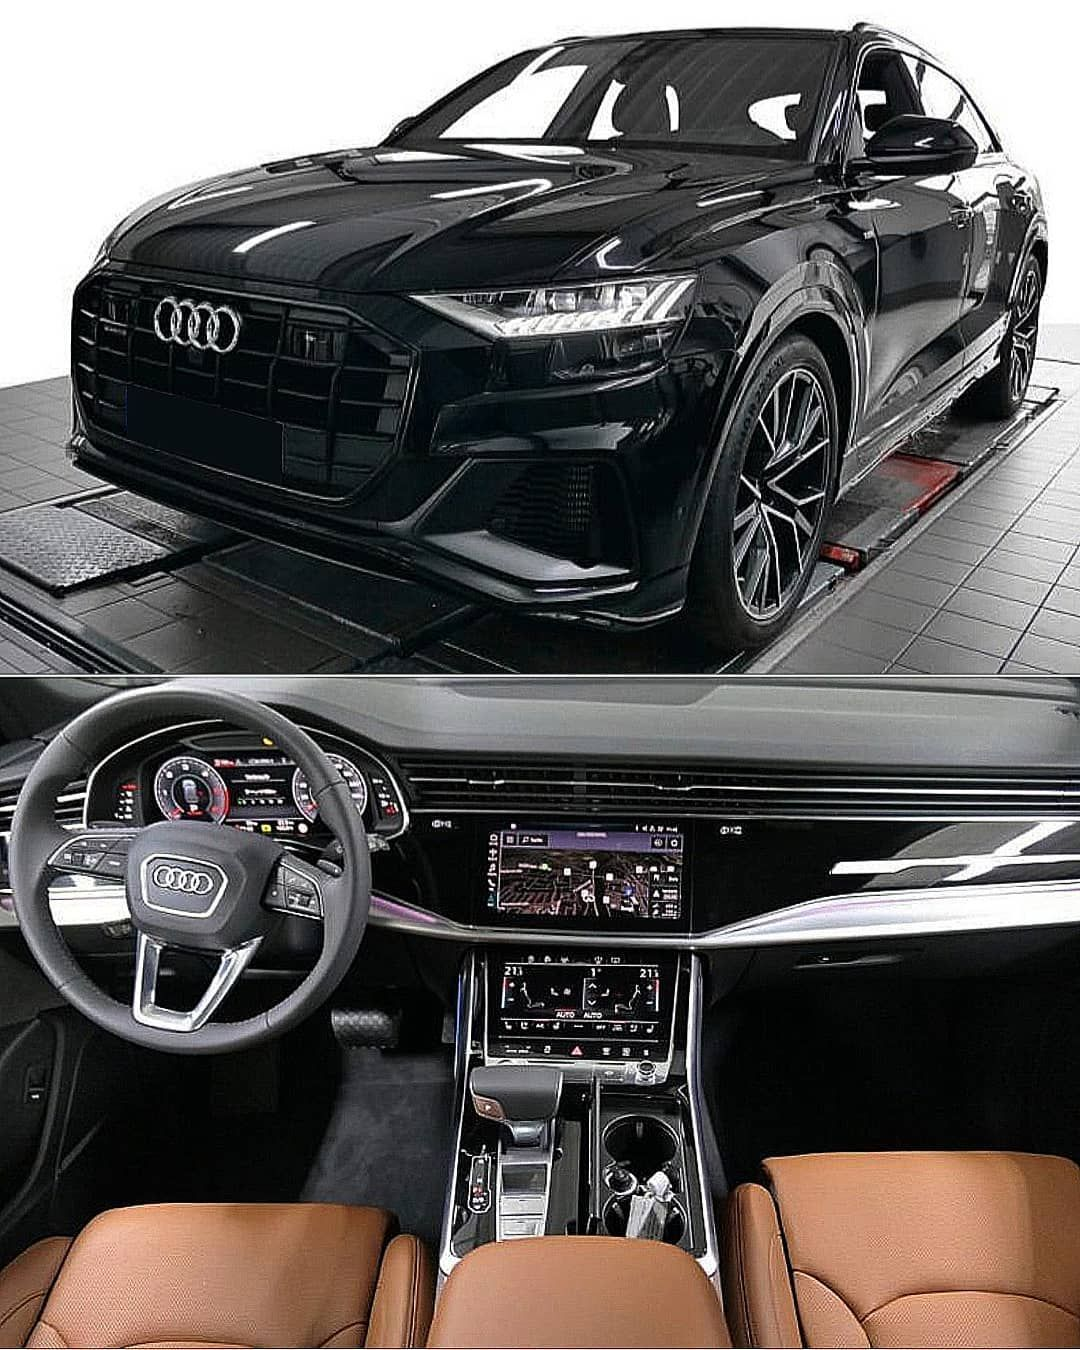 Audi Q8 On Instagram Black Cognac Q8 Audi Lovers Q8nation Audi Audiq8 Audilove Carlove Suv Audiq7 Audilove Audiq8 Black In 2020 Black Audi Suv Cars Audi